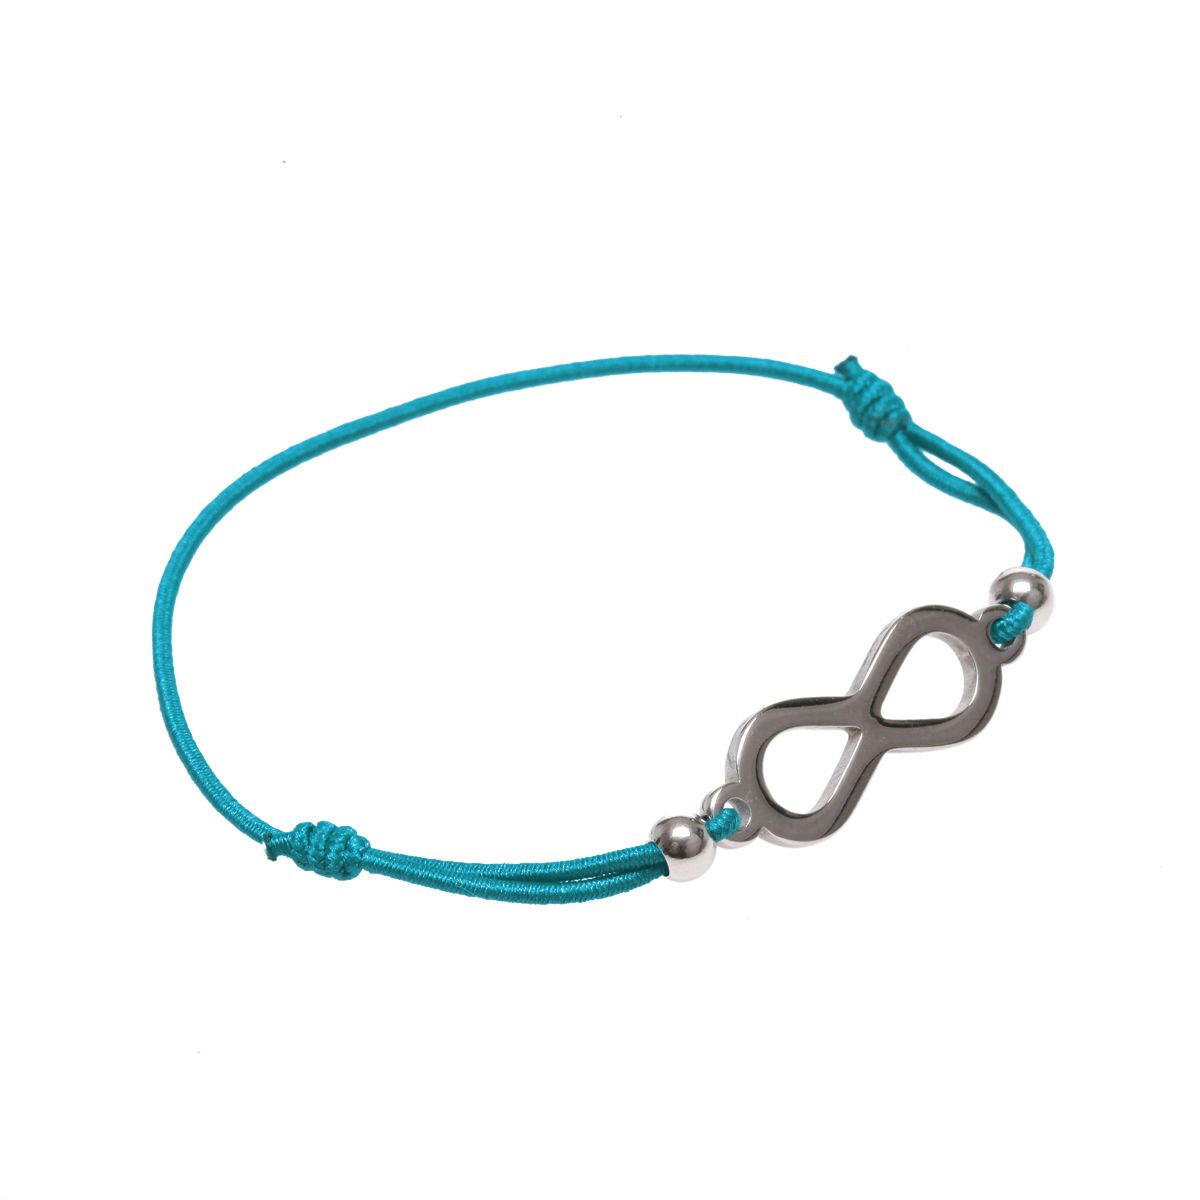 bracelet cordon turquoise avec signe infini femme pas cher lamodeuse. Black Bedroom Furniture Sets. Home Design Ideas